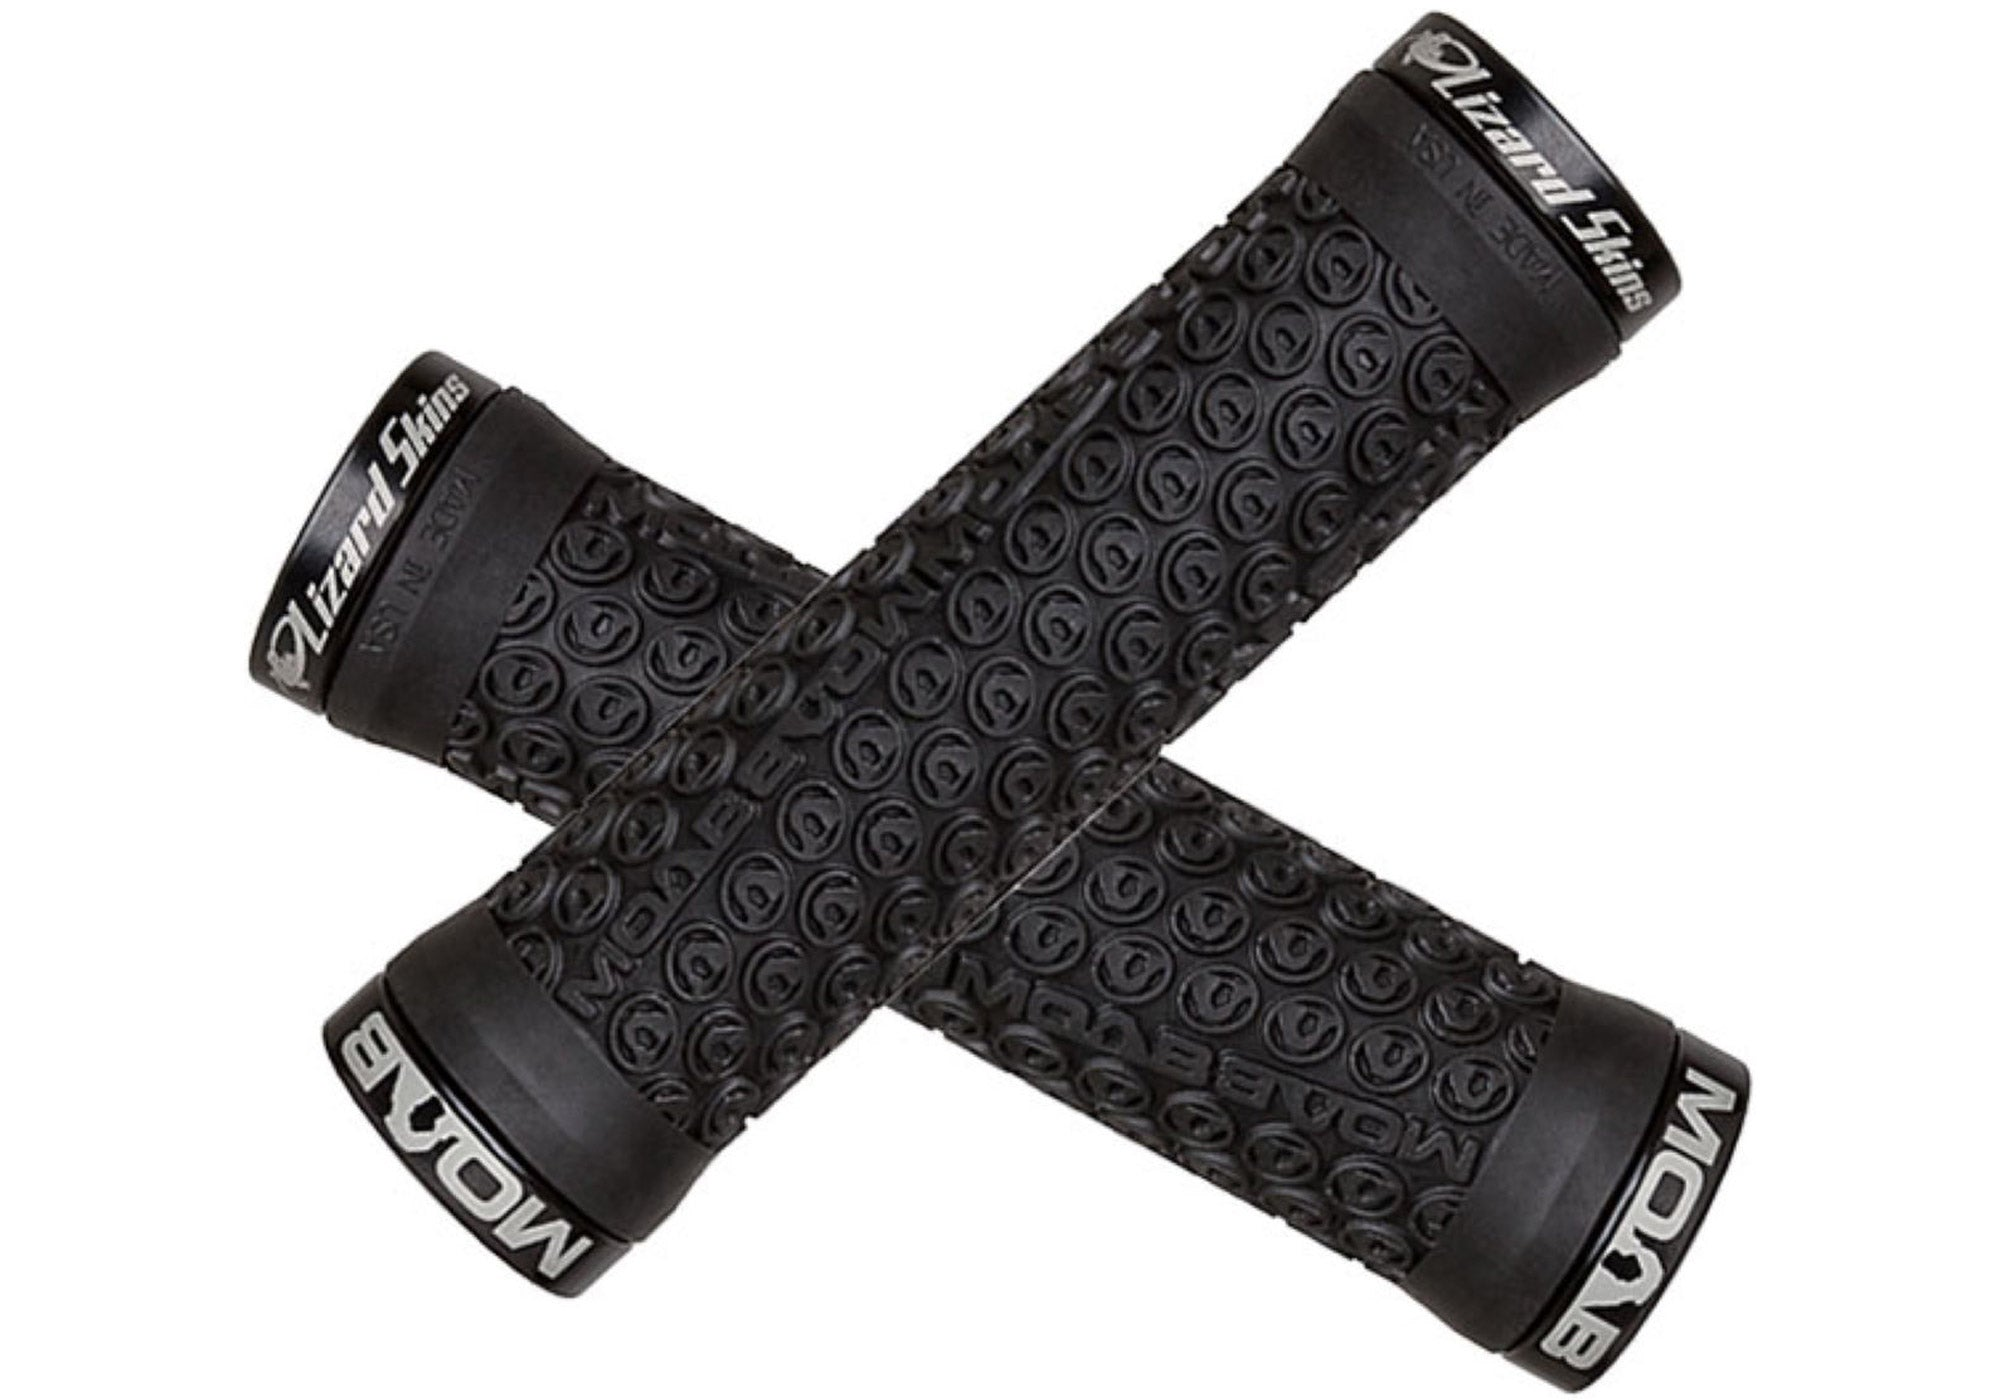 Lizard Skins Lock-On Moab MTB Grips - Black, buy online at Woolys Wheels Sydney